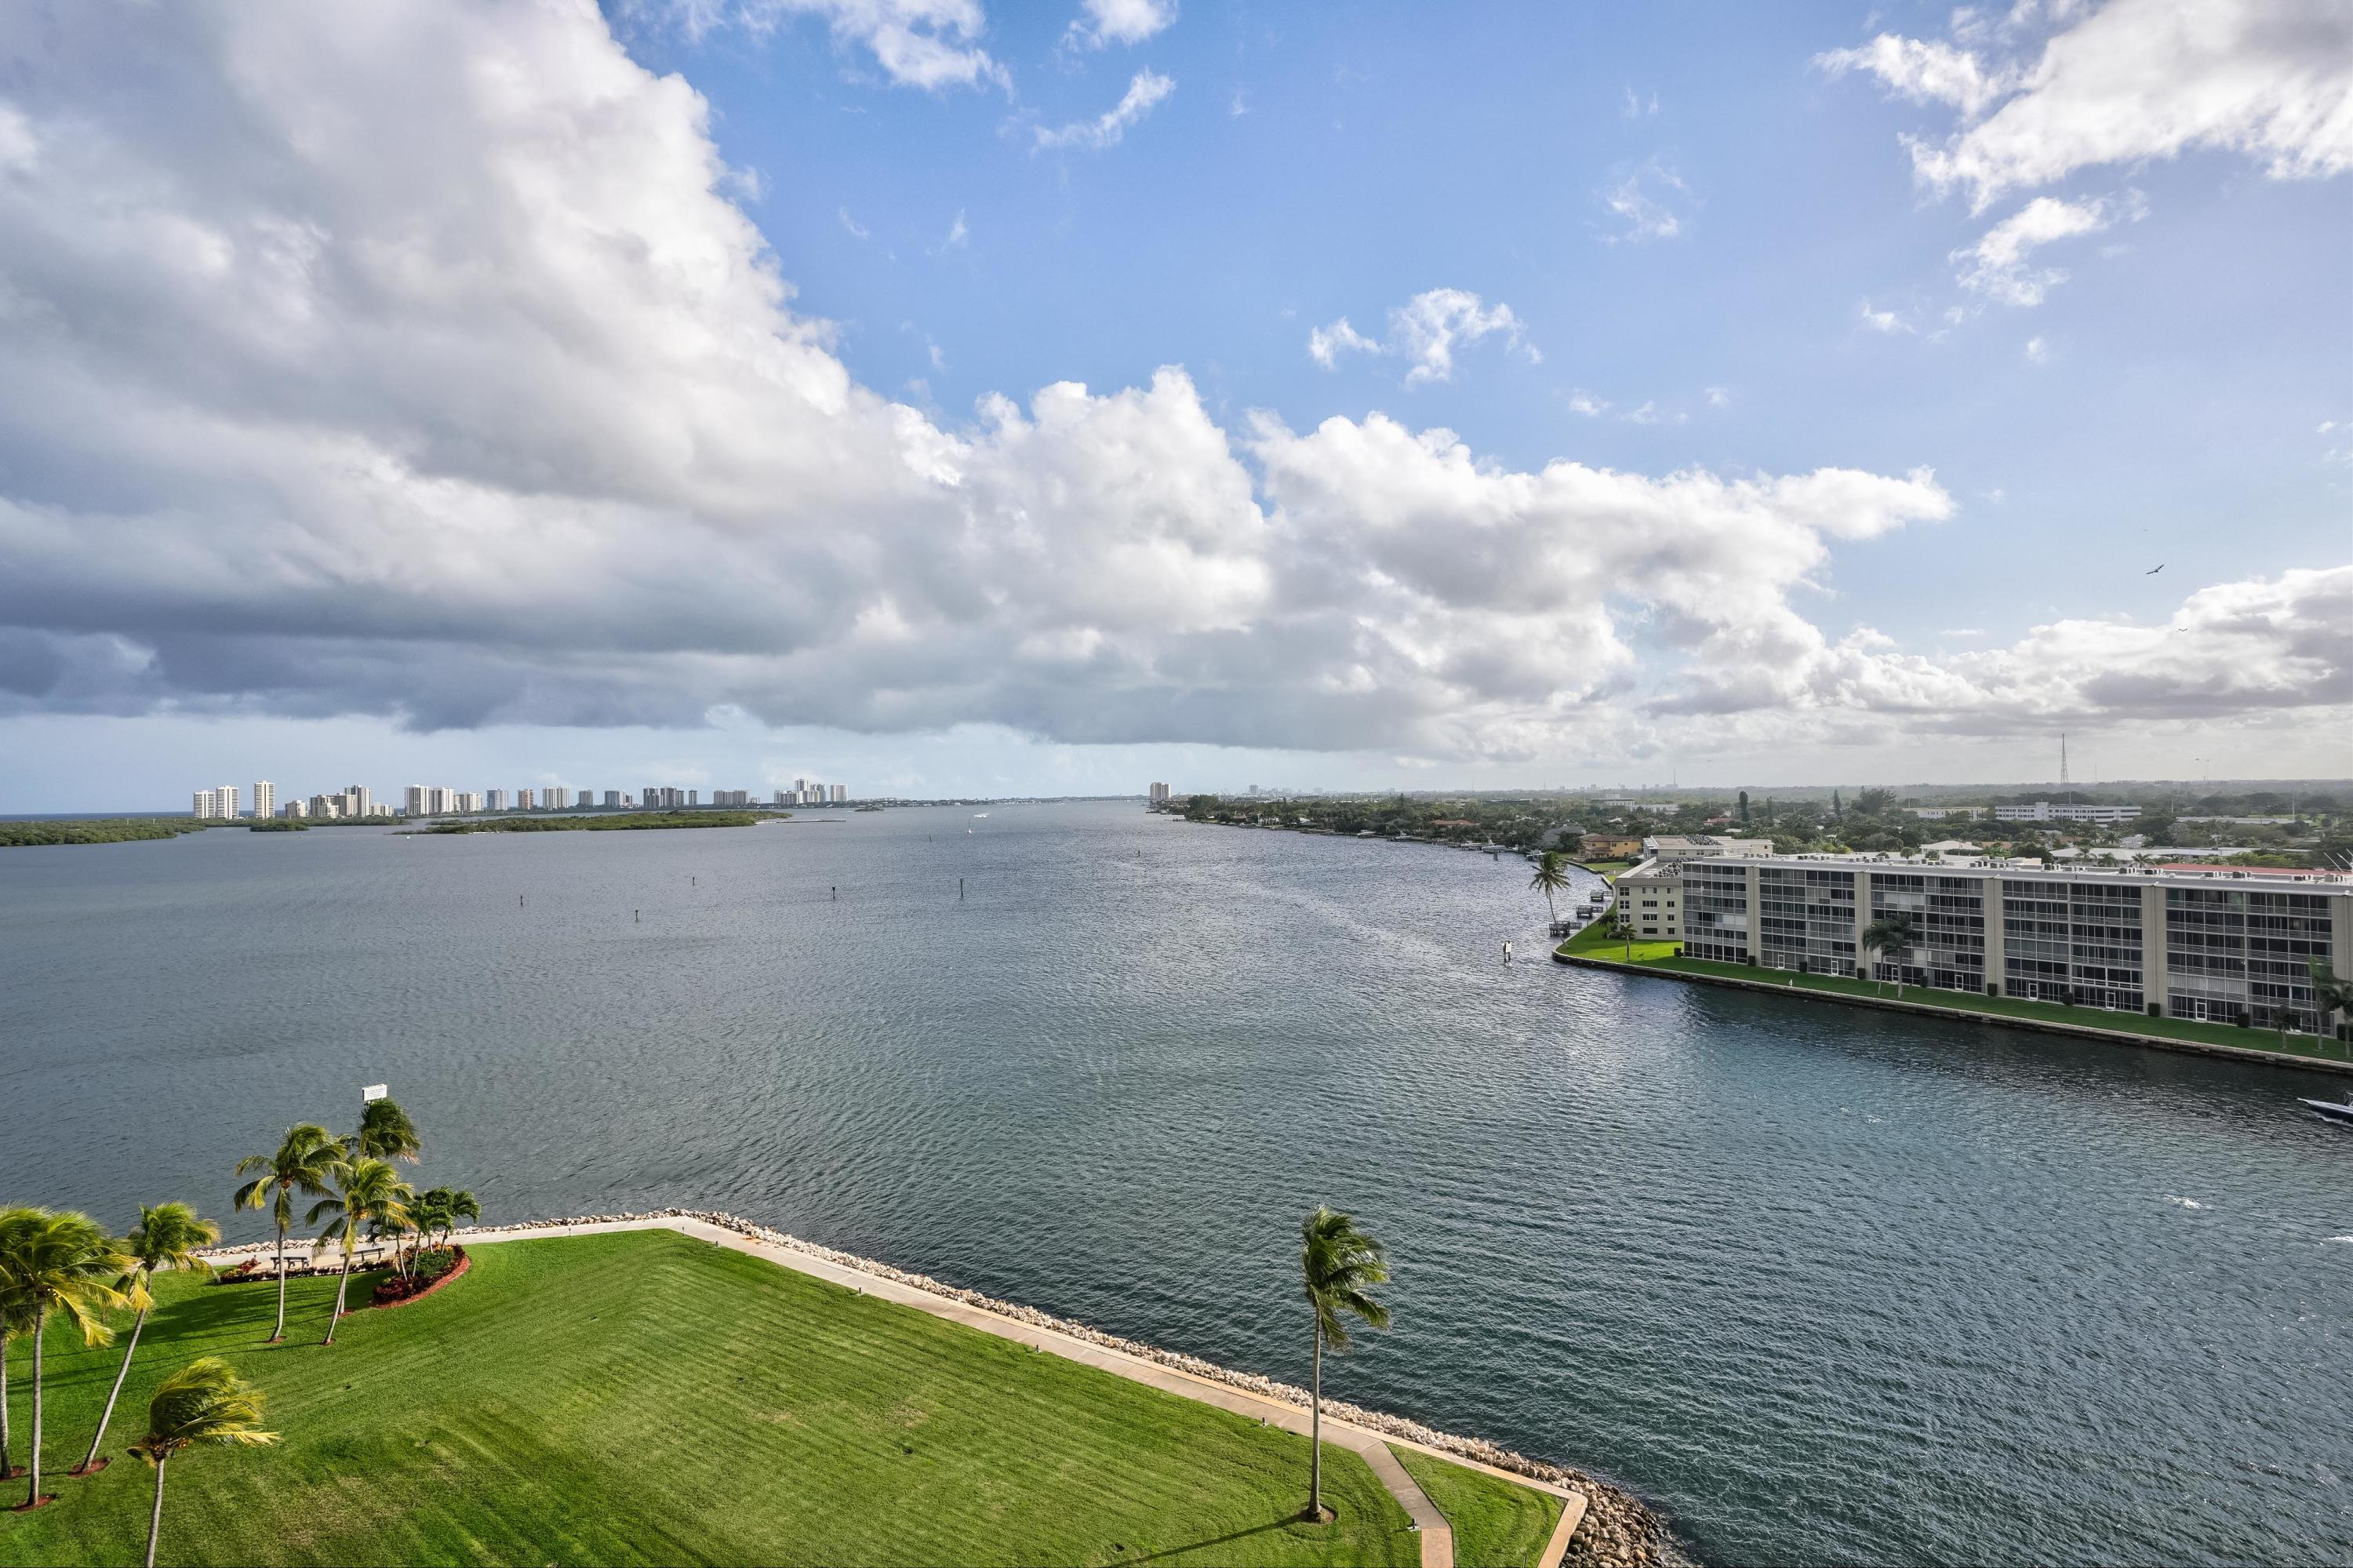 115 Lakeshore Drive, North Palm Beach, Florida 33403, 3 Bedrooms Bedrooms, ,2.1 BathroomsBathrooms,Condo/Coop,For Sale,Old Port Cove,Lakeshore,11,RX-10505590